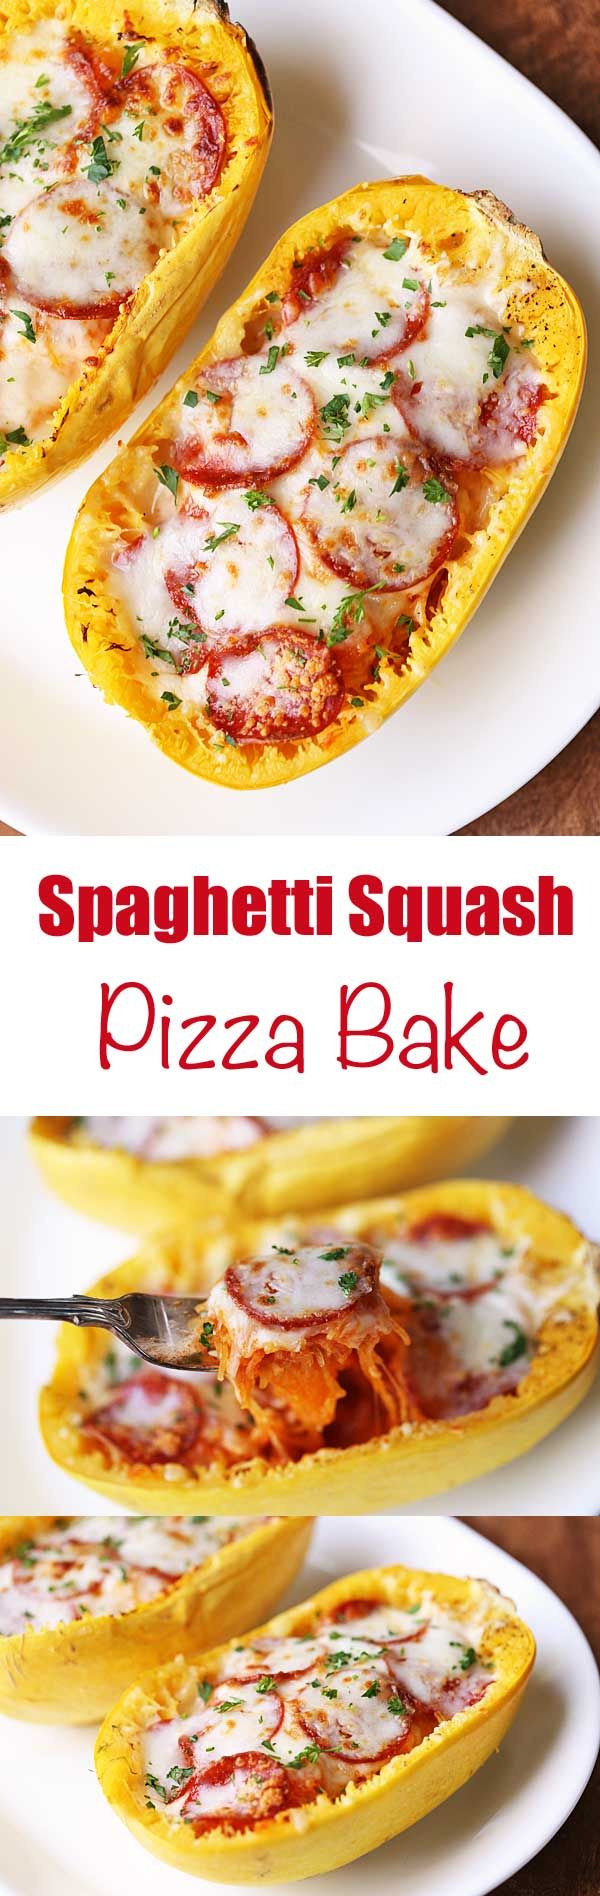 Spaghetti squash pizza lets you enjoy the flavors and textures of pizza (or pasta) without the carb and gluten overload, and with the added nutrients and fiber from spaghetti squash.